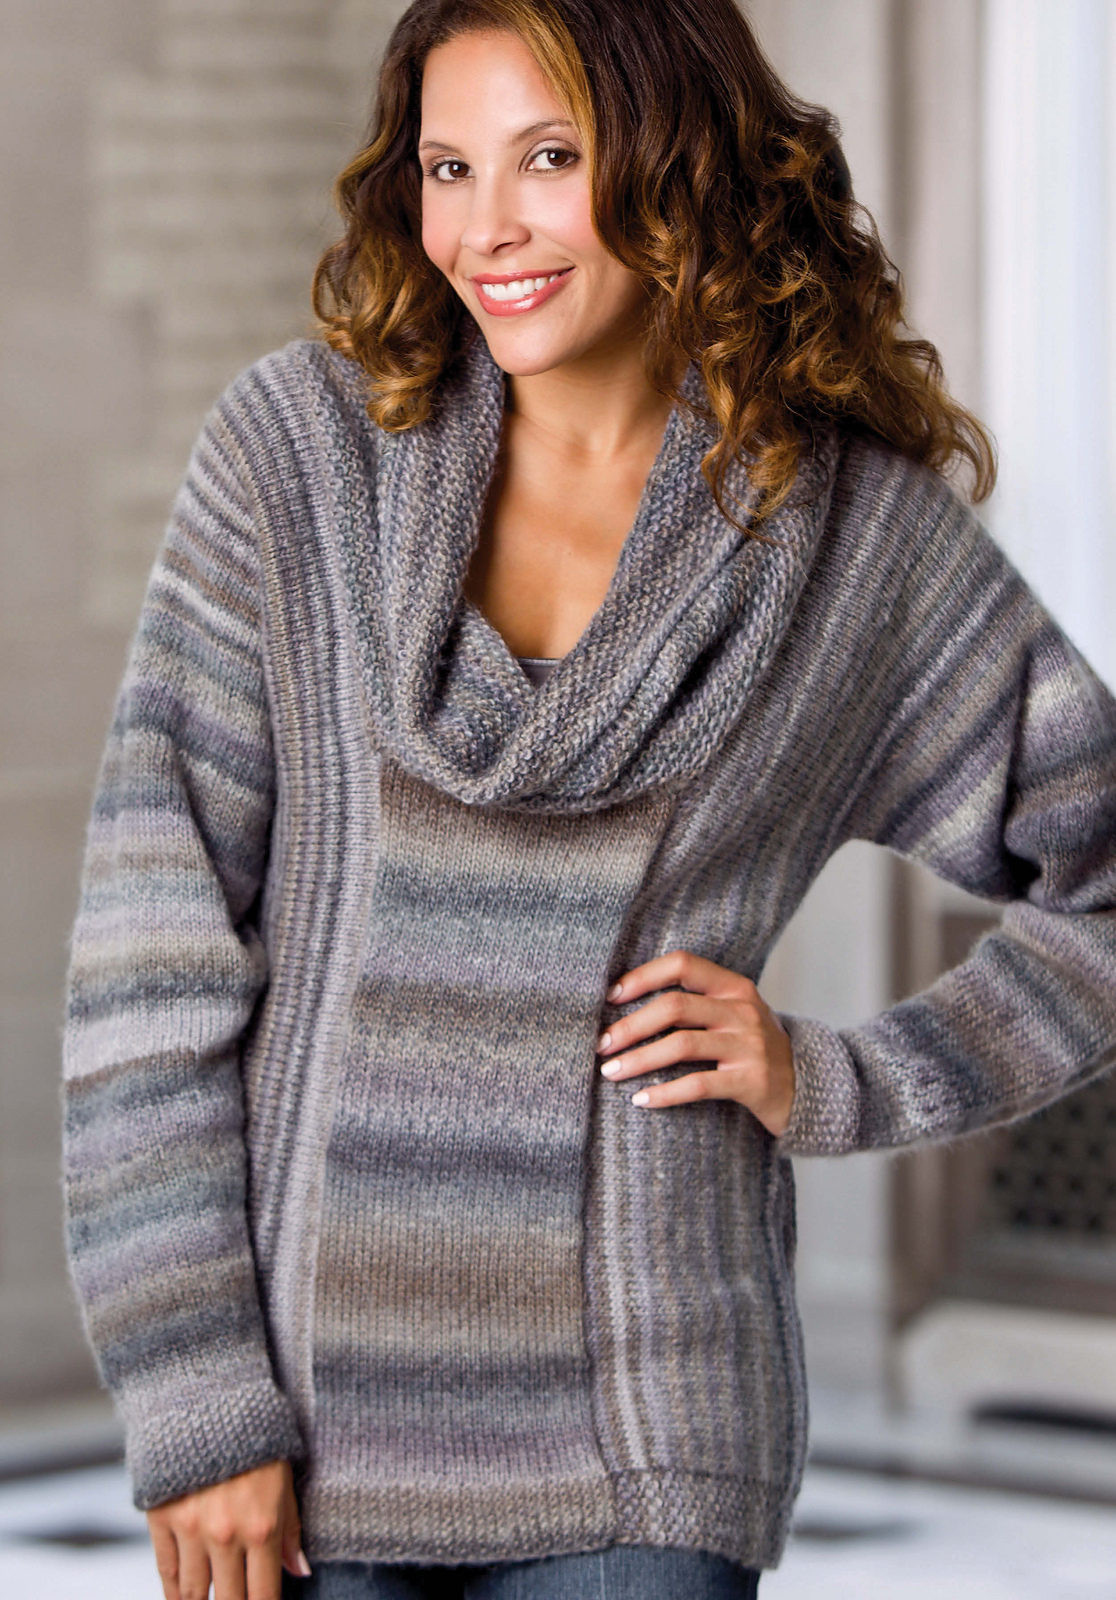 Easy Knitting Patterns Best Of Easy Sweater Knitting Patterns Of Superb 44 Ideas Easy Knitting Patterns